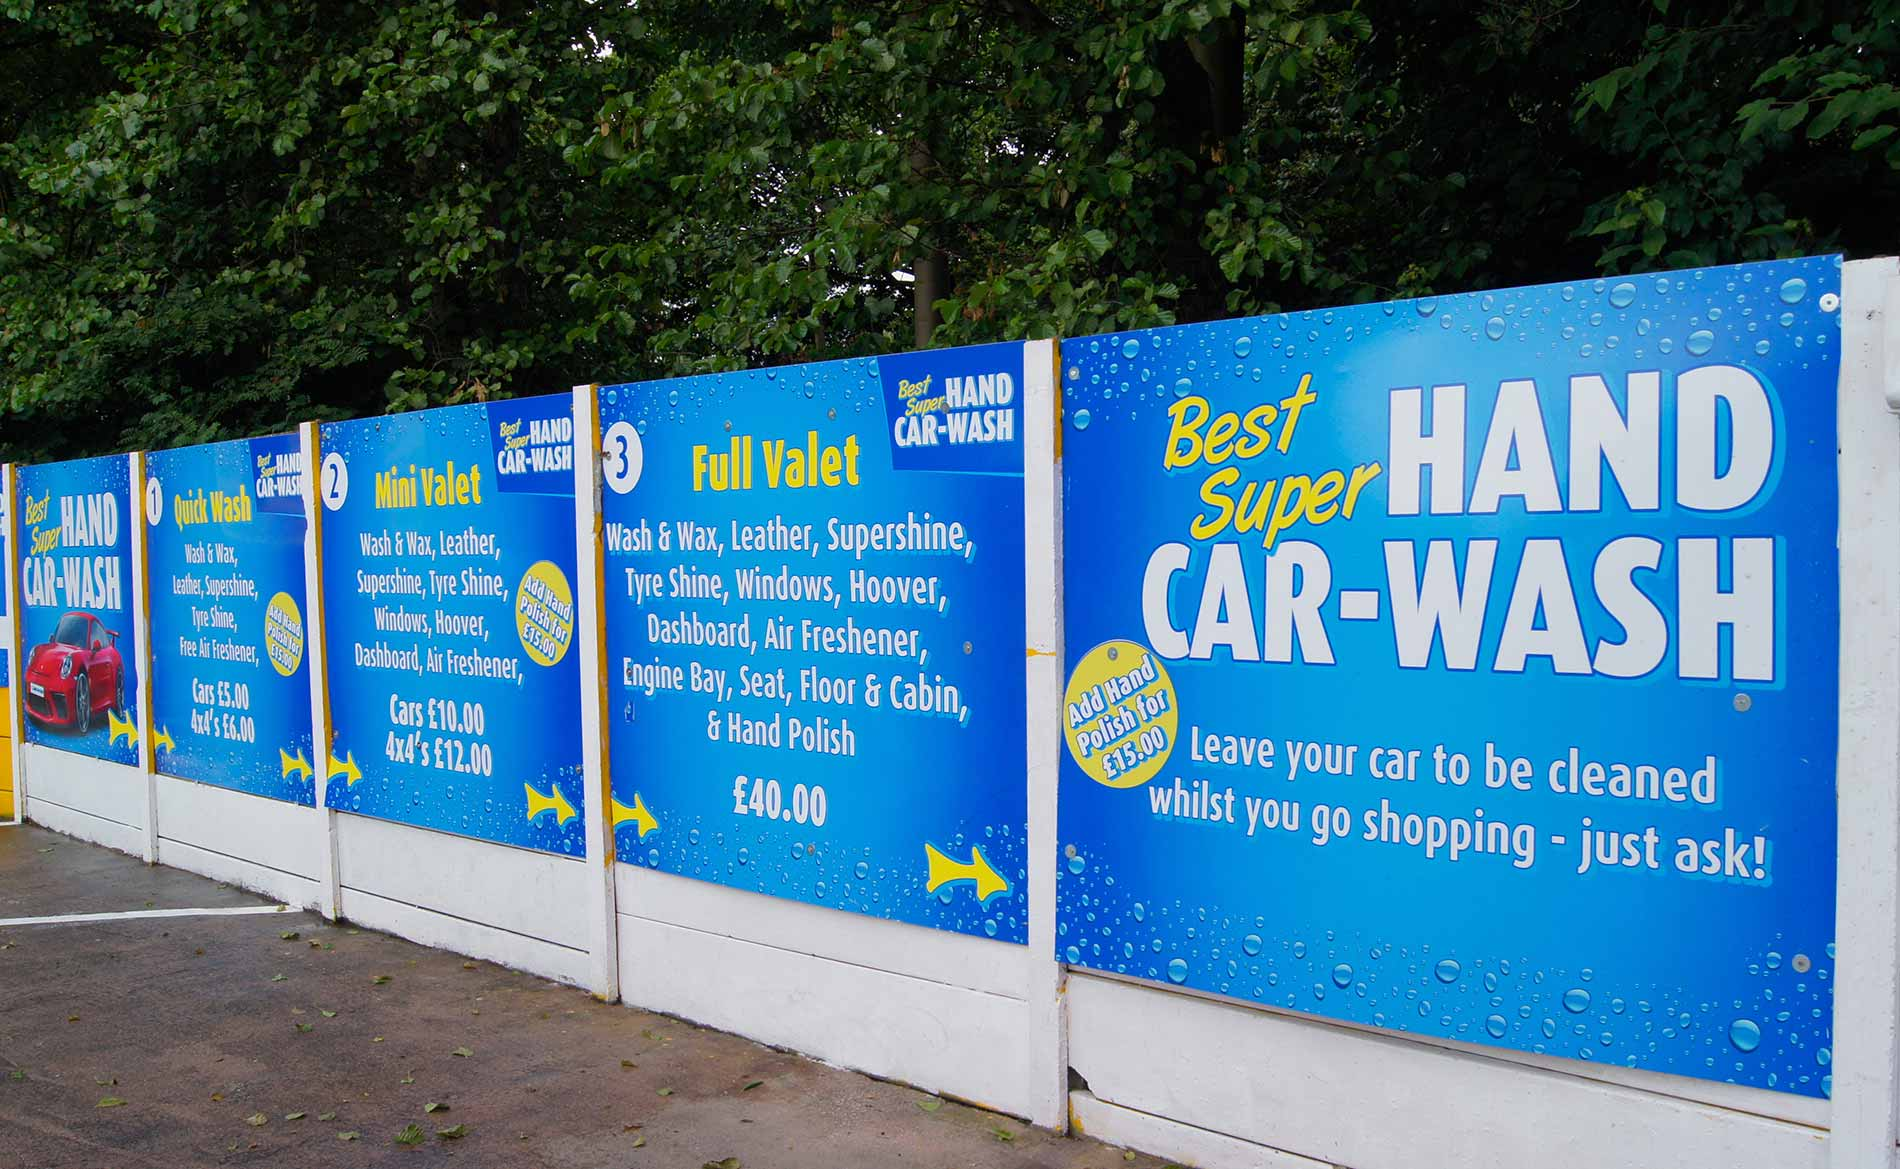 Best Super Hand Car Wash Sherwin Rivers Ltd Staffordshire S